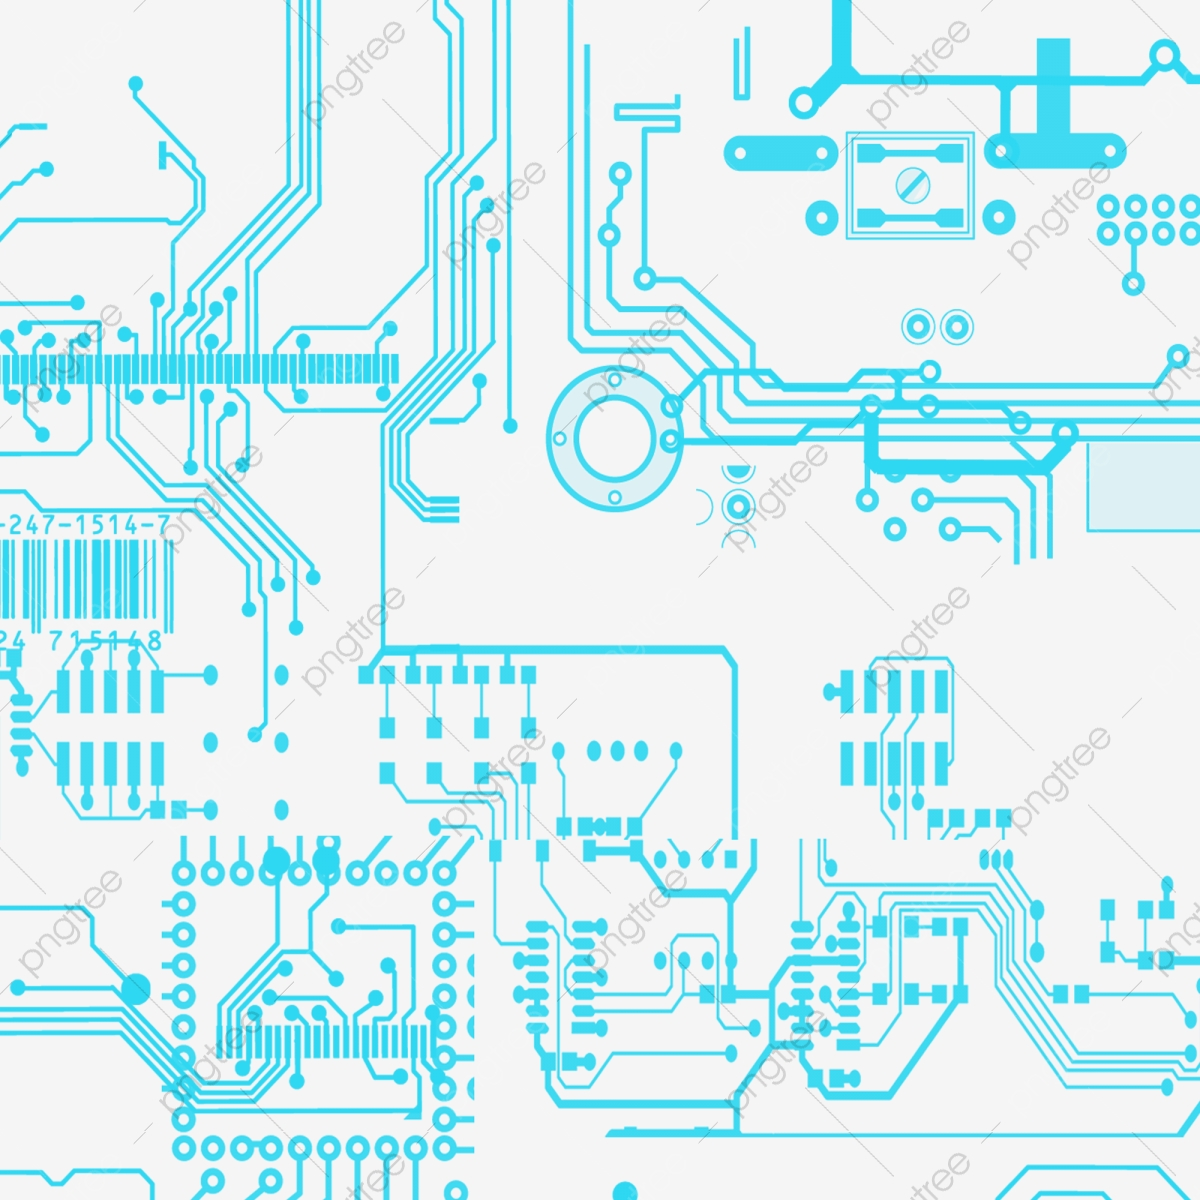 hight resolution of commercial use resource upgrade to premium plan and get license authorization upgradenow circuit board